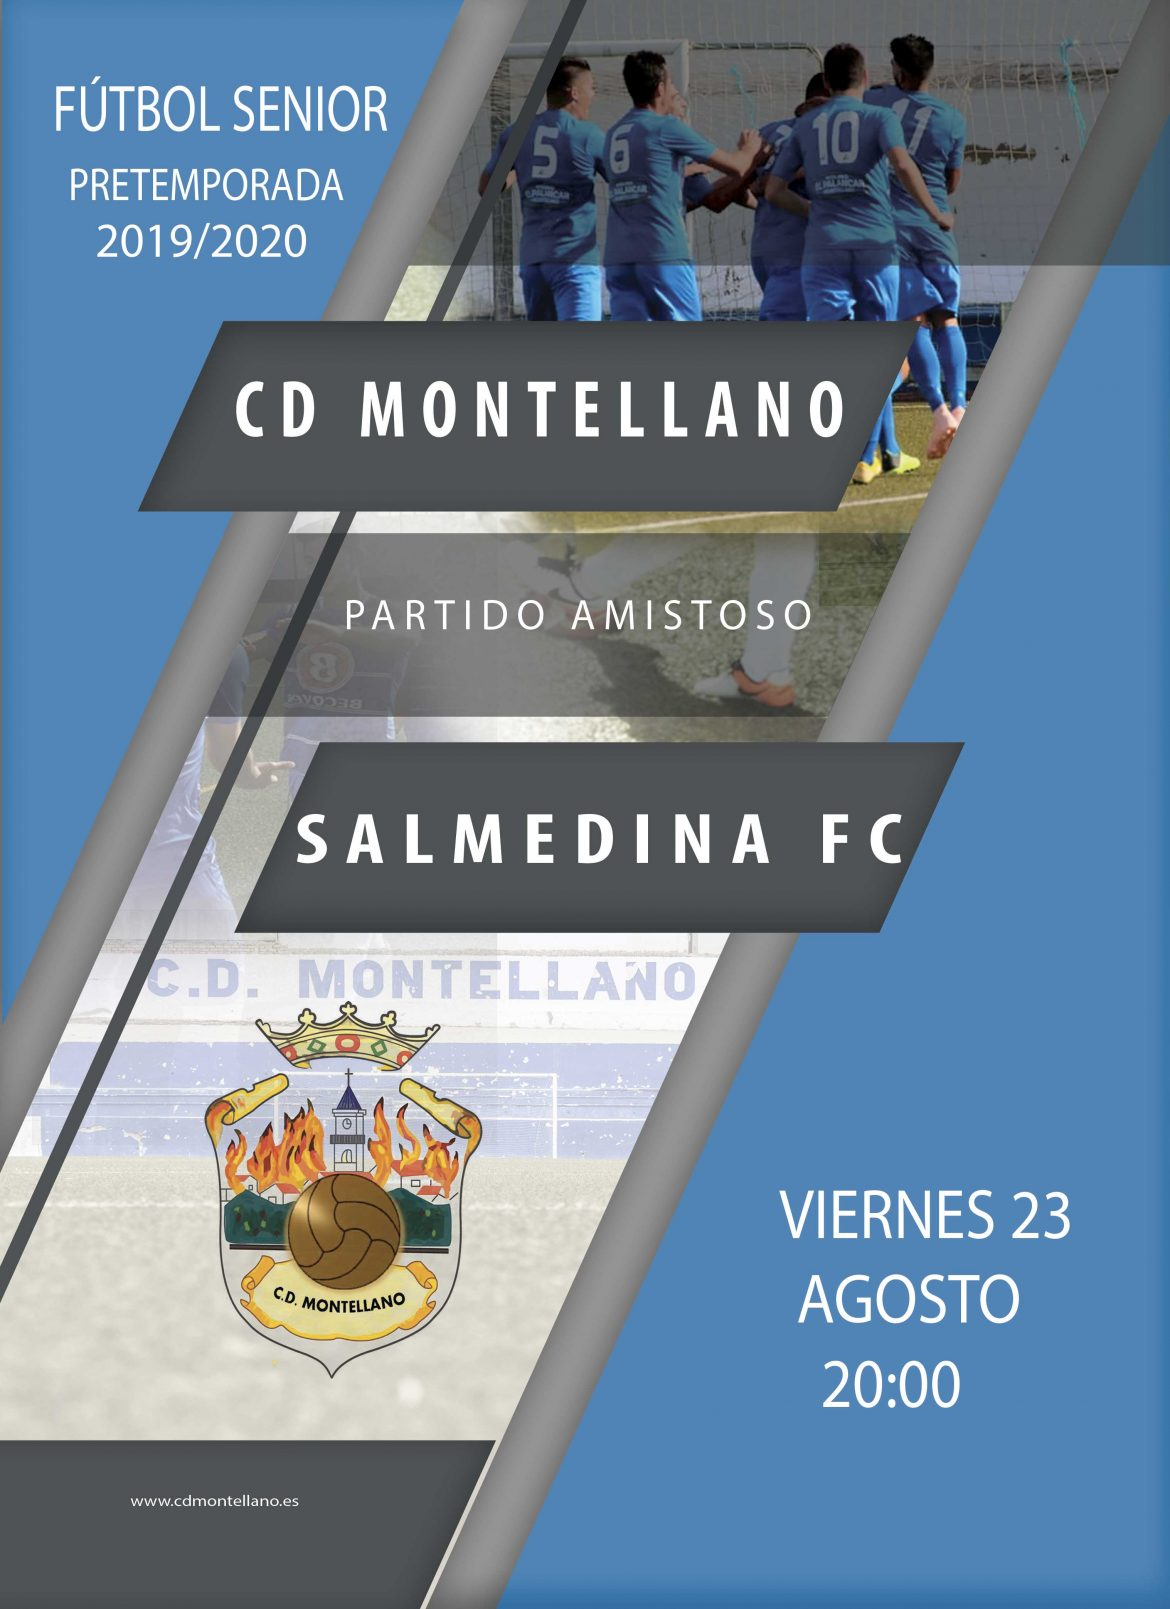 Pretempordad 19/20 cd montellano